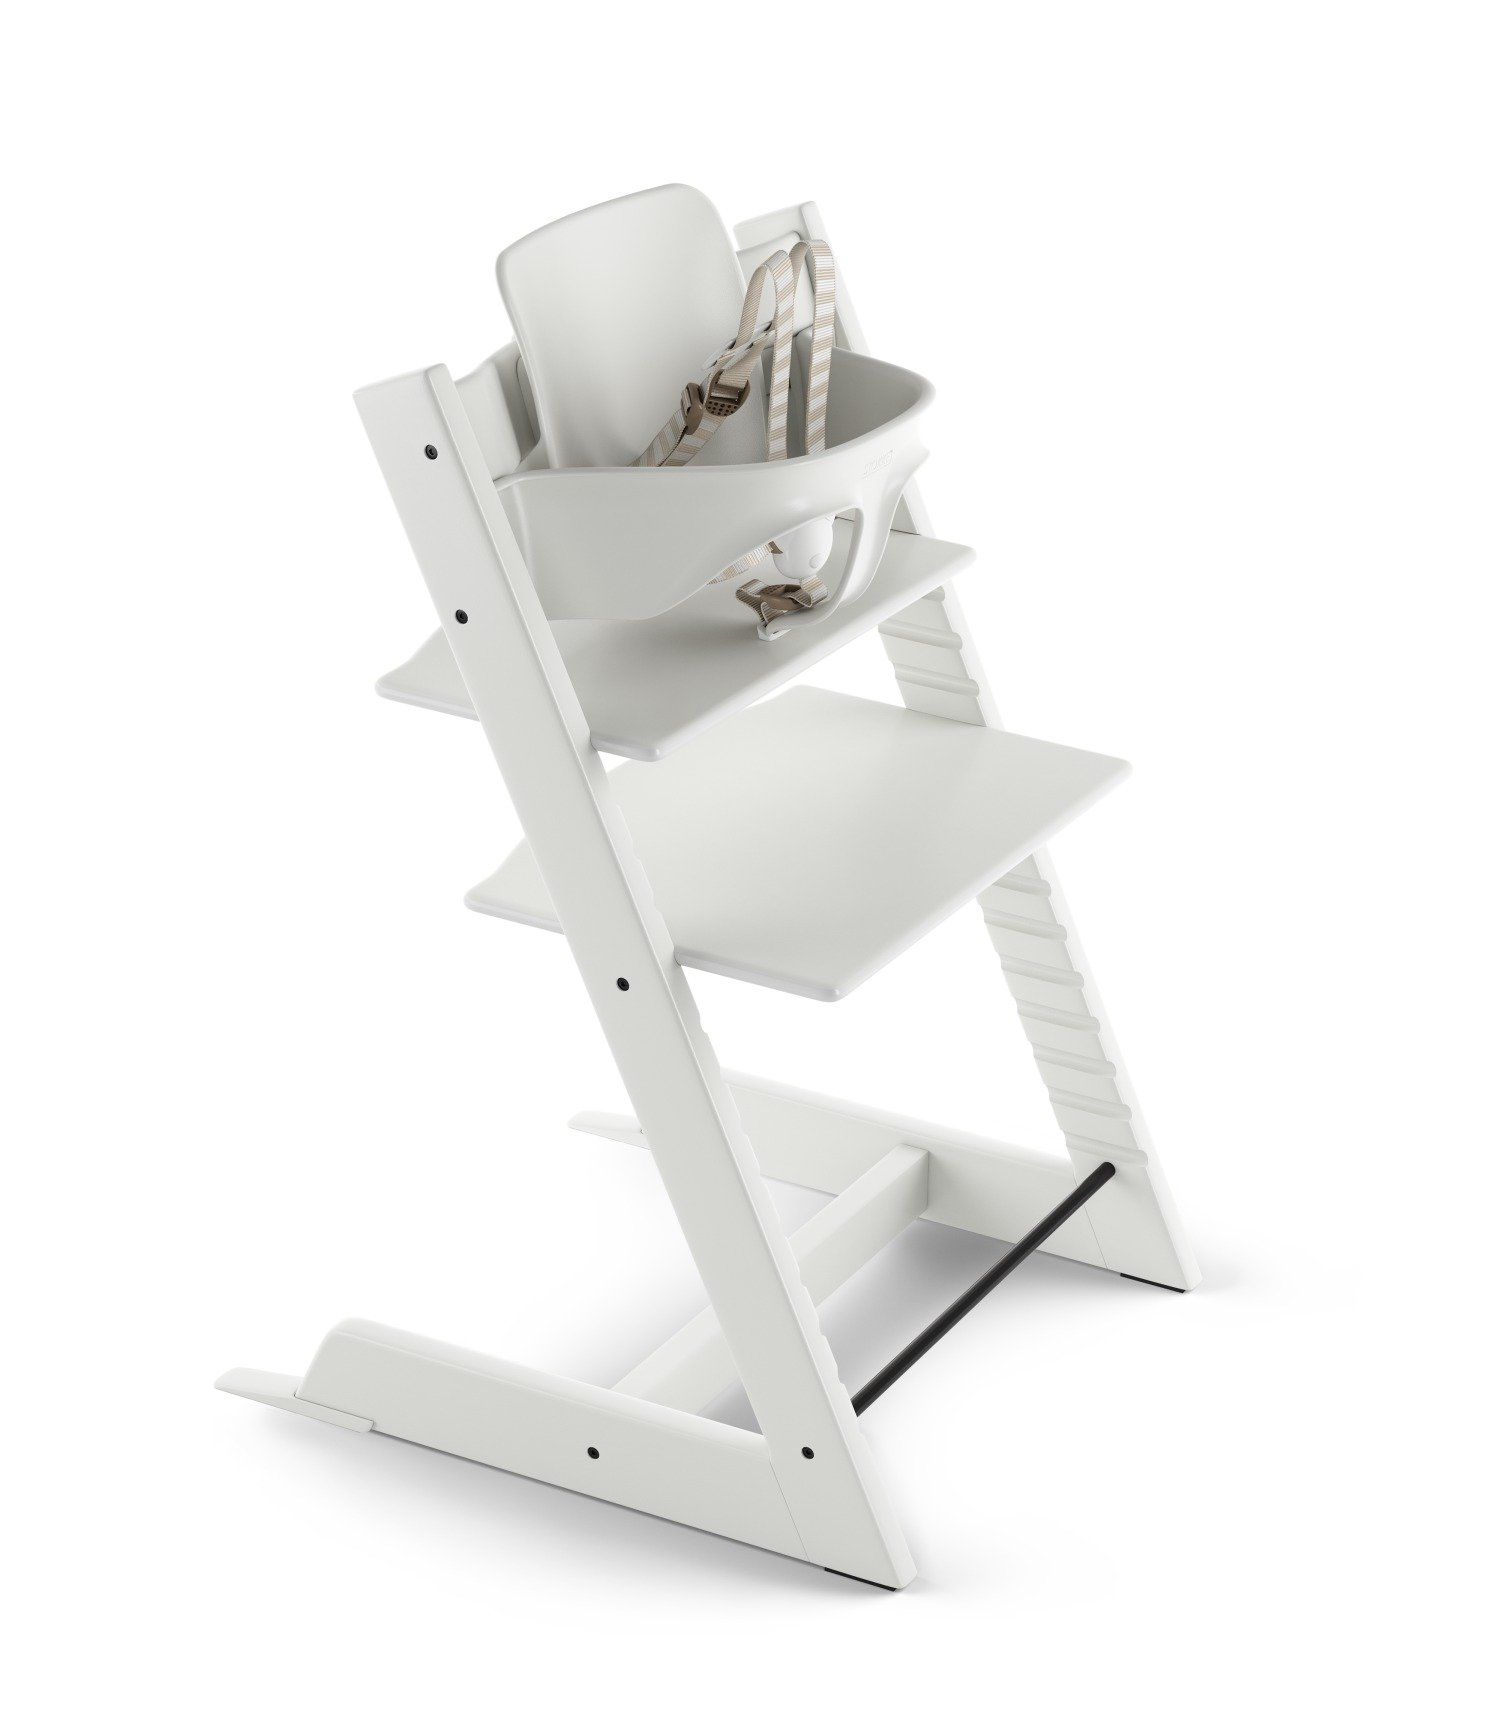 Stokke Tripp Trapp High Chair Package - White